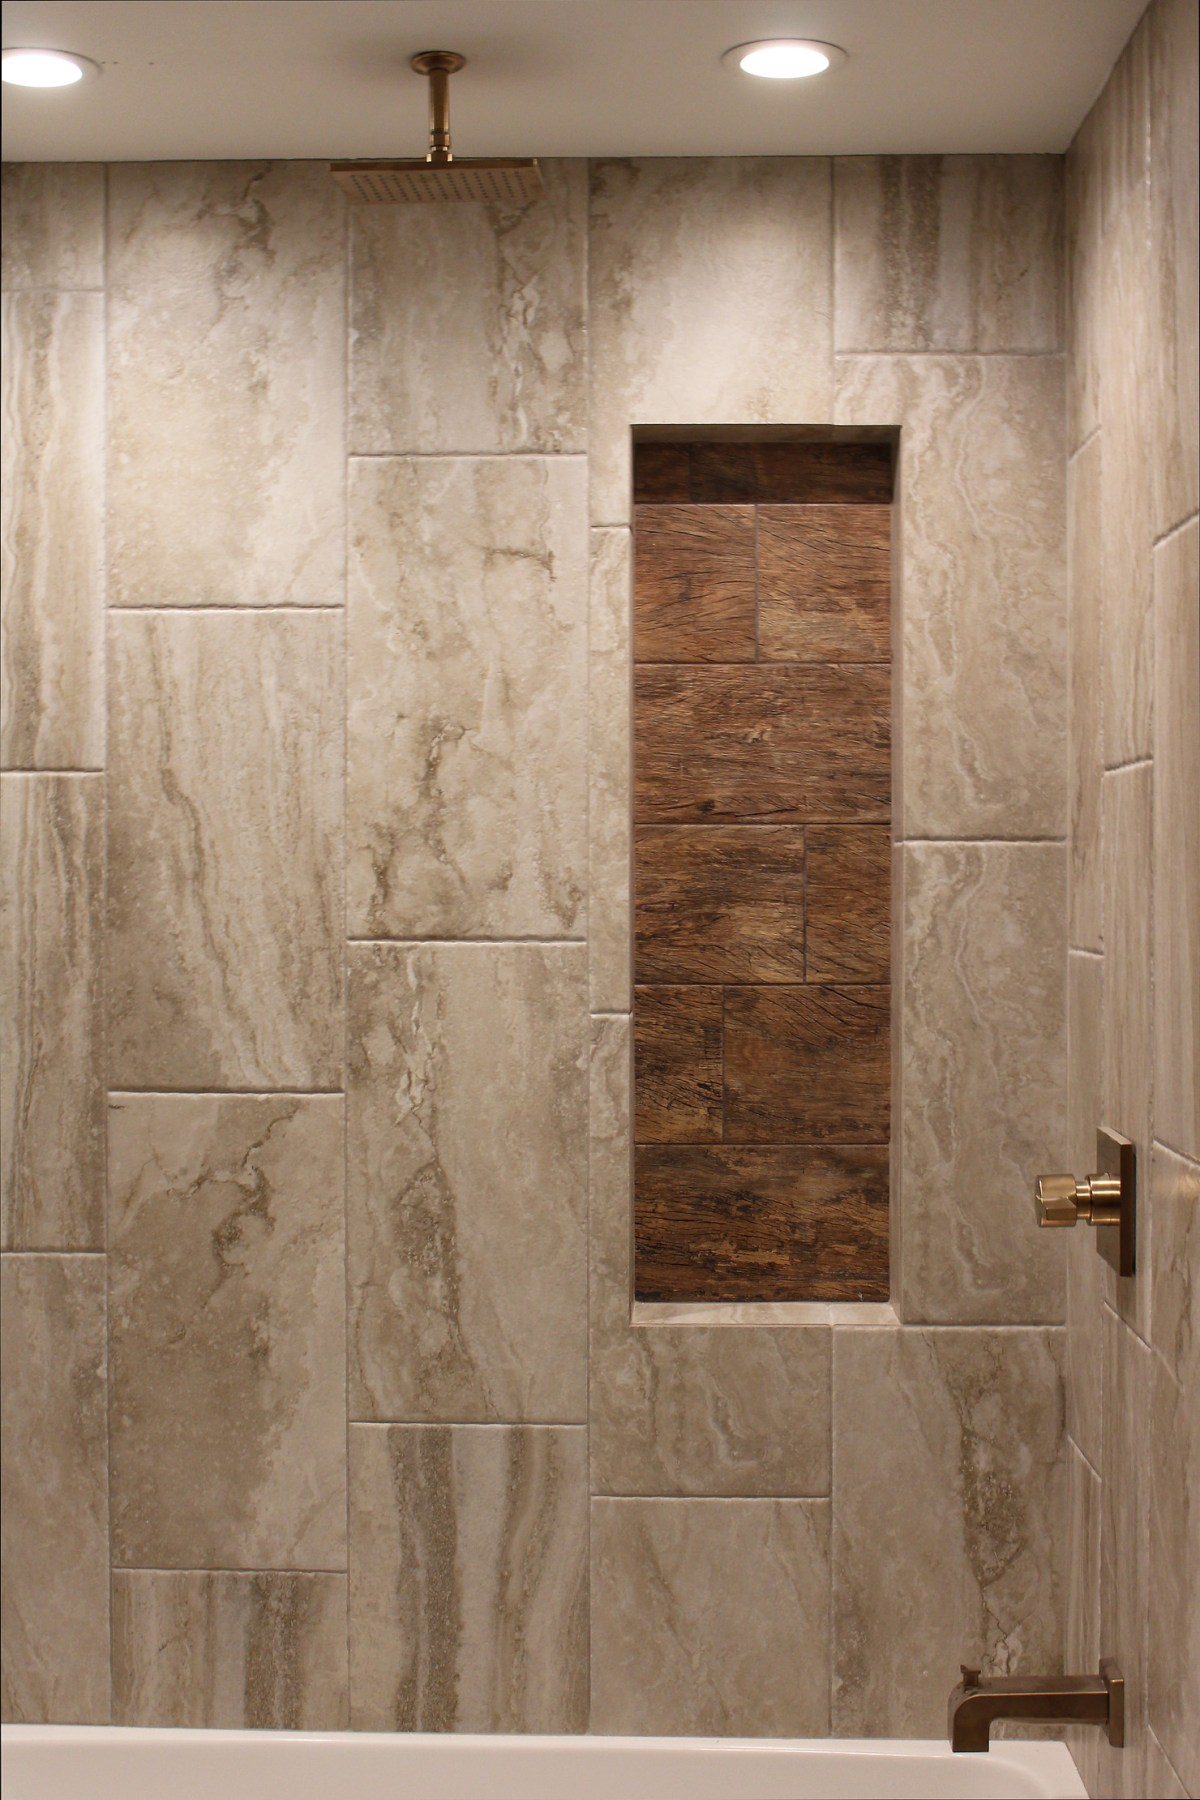 Bathroom remodel uses wood look tile in shower niche